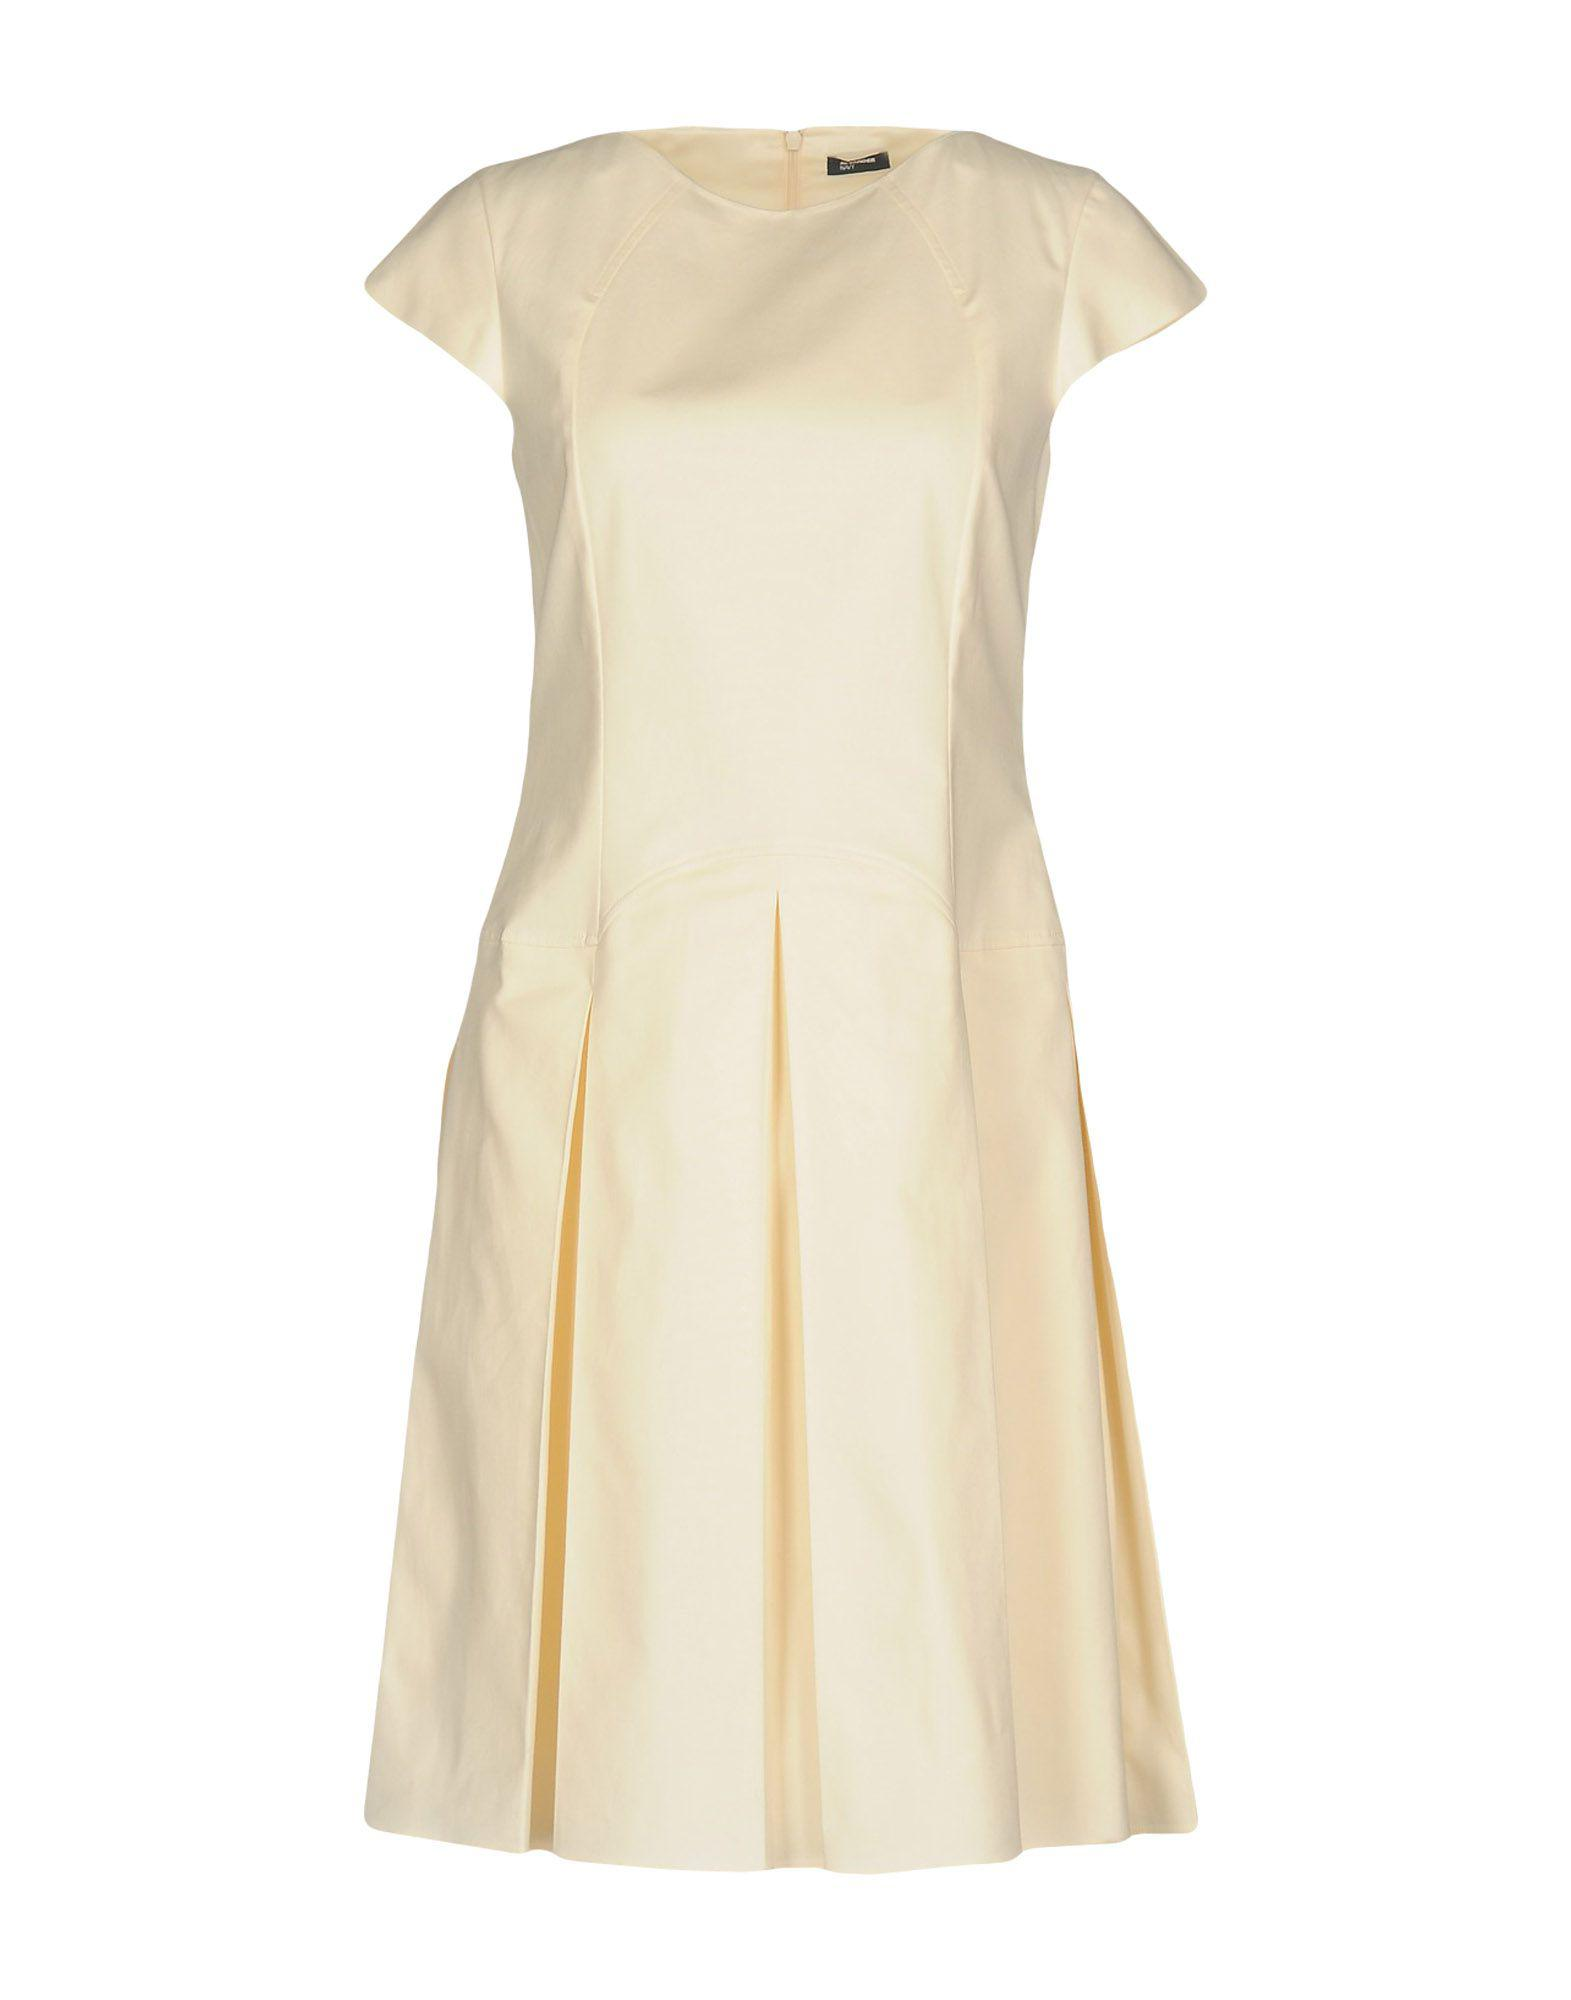 Jil Sander Navy Sleeveless Knee-Length Dress Discount Pick A Best Free Shipping Low Price Big Sale Cheap Online Outlet Visit cG7BtF4